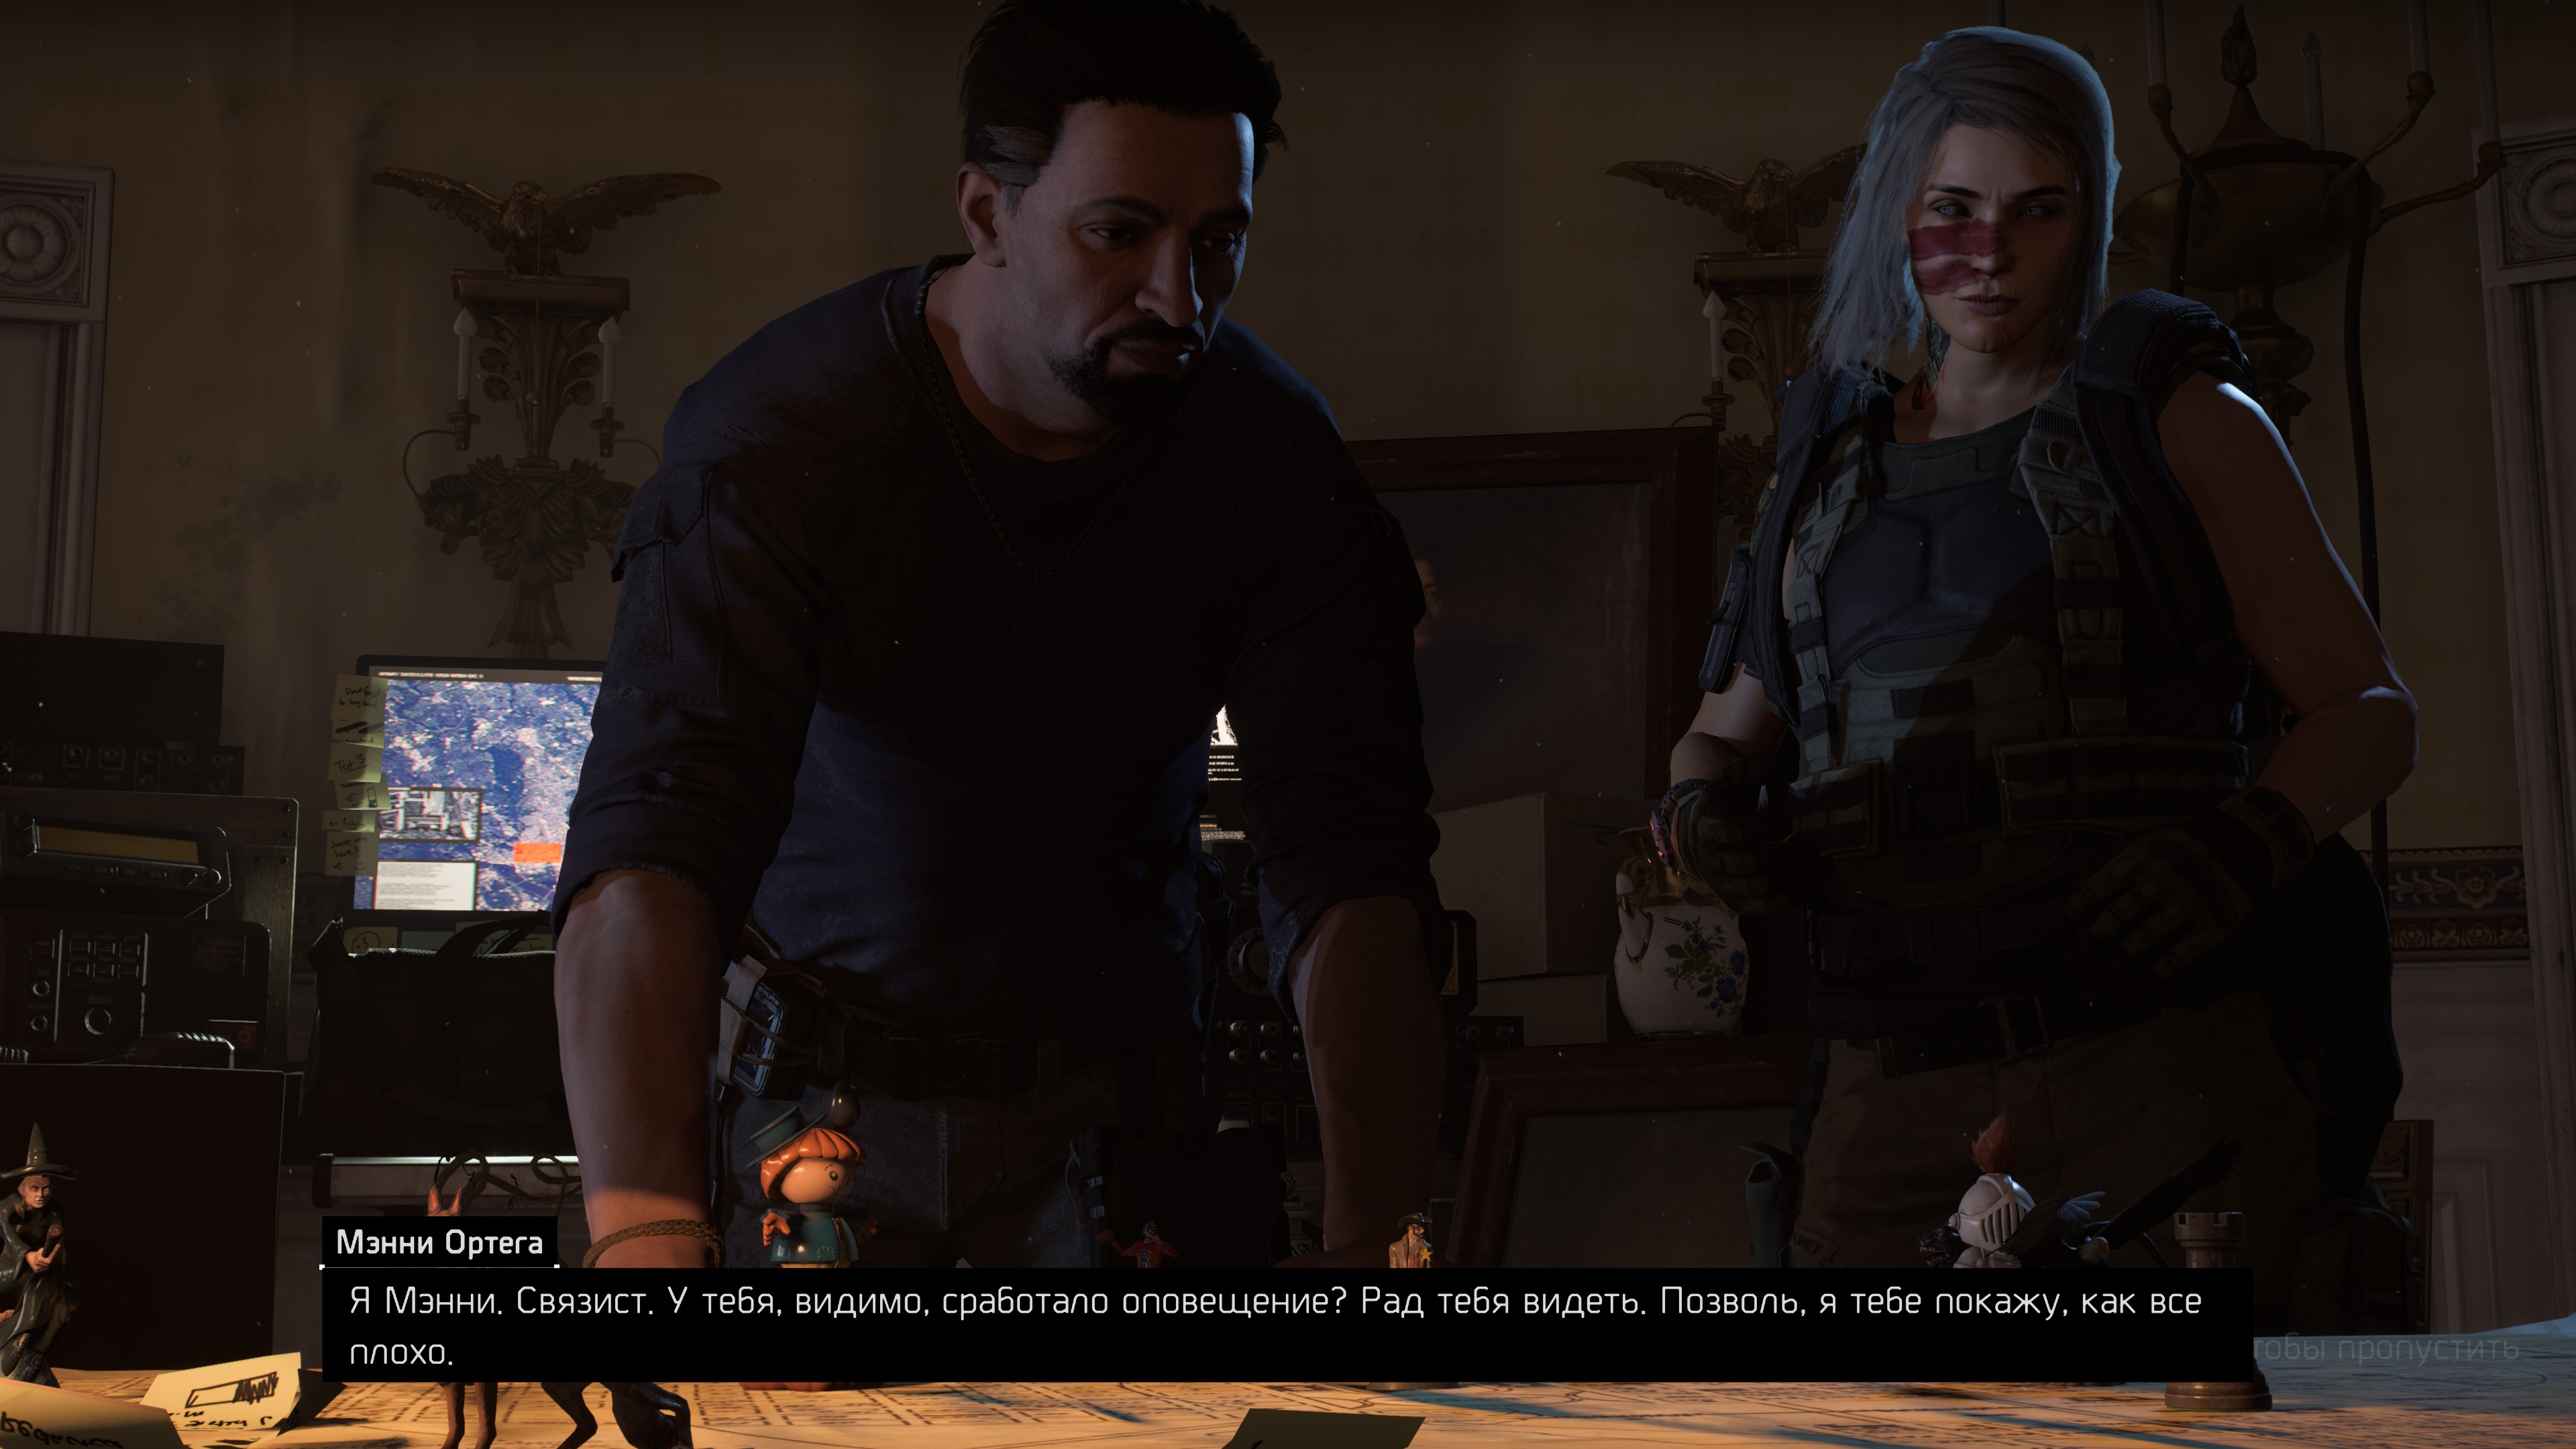 Tom Clancy's The Division® 22020-3-1-6-17-18.jpg - Tom Clancy's The Division 2